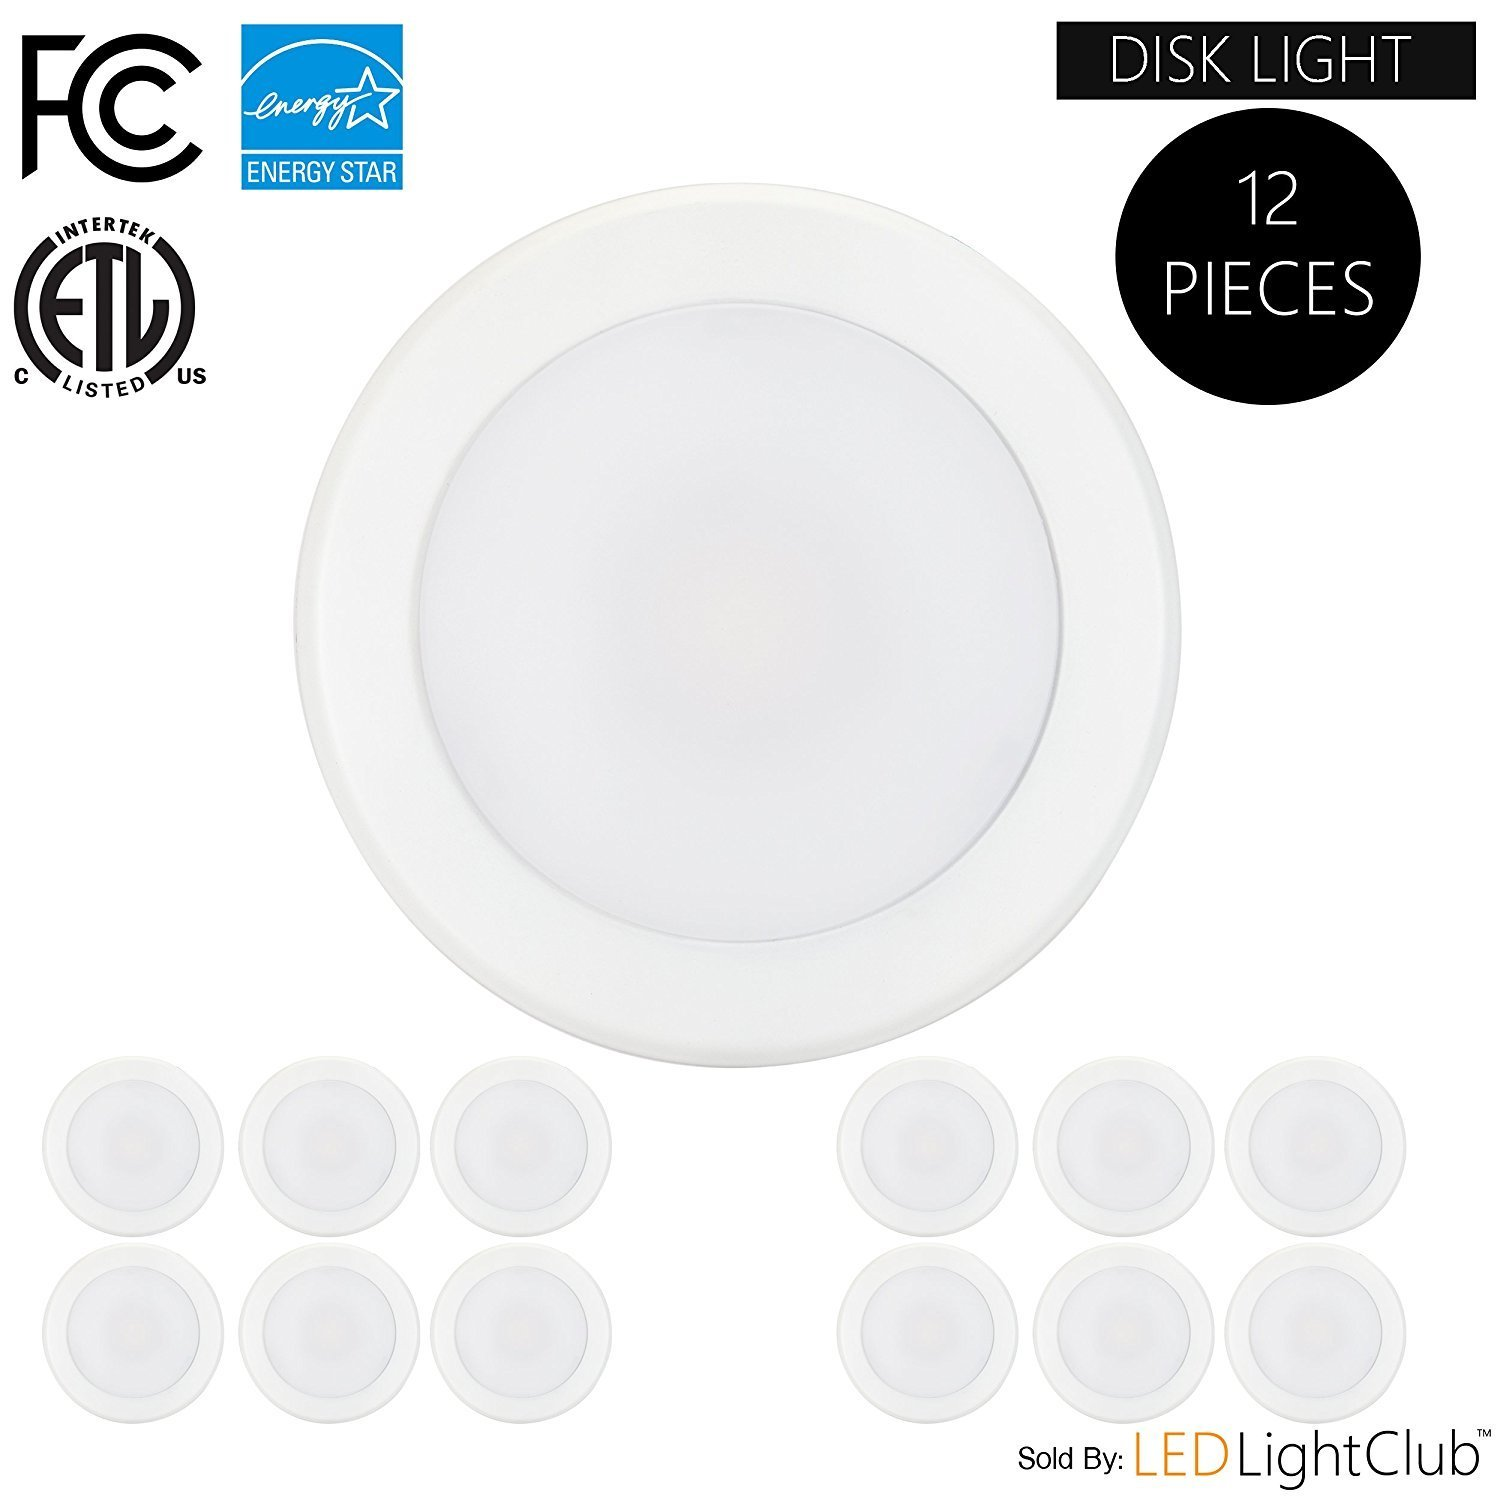 "(12-Pack)- 5/6"" Dimmable LED Disk Light Flush Mount Ceiling Fixture, 15W (120W Replacement), 5000K (Day Light), ENERGY STAR, Installs into Junction Box Or Recessed Can, 1200Lm"